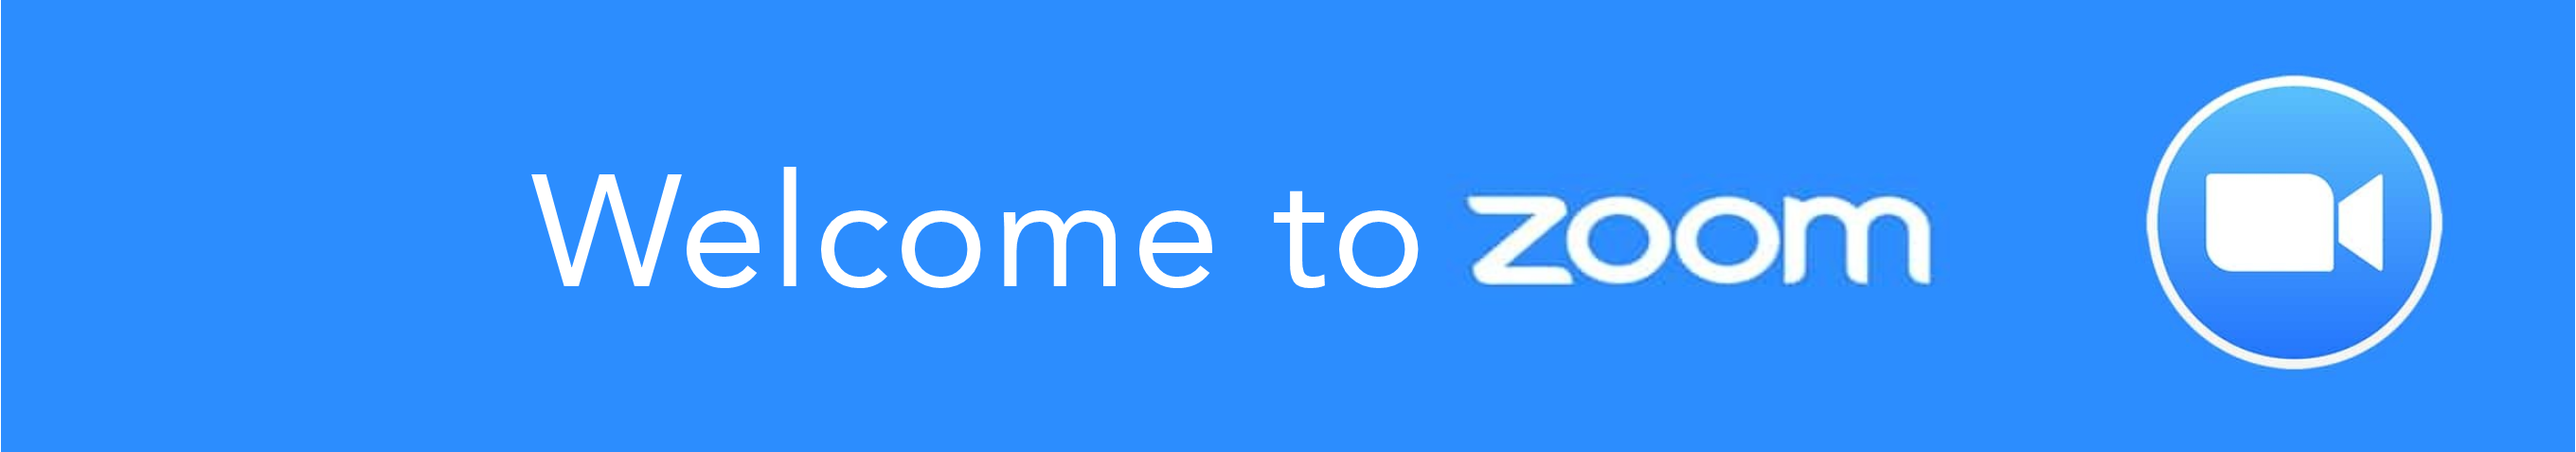 zoom banner